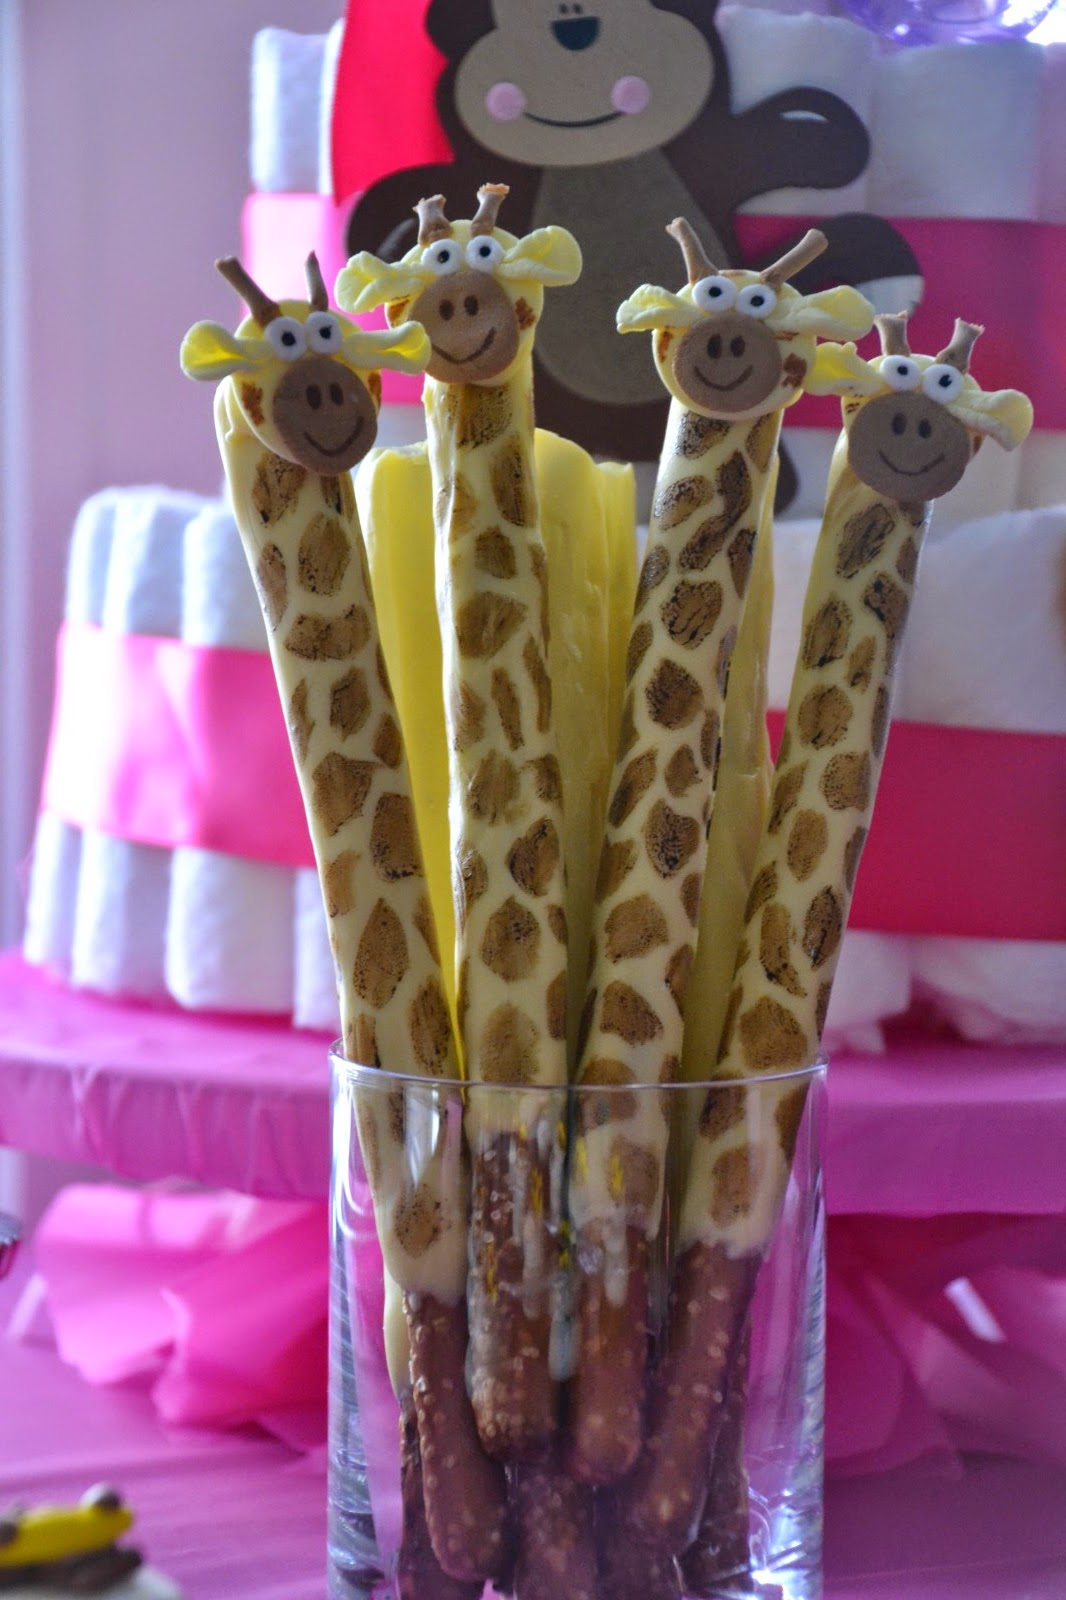 Much Ado About Somethin Chocolate Covered Pretzel Giraffes